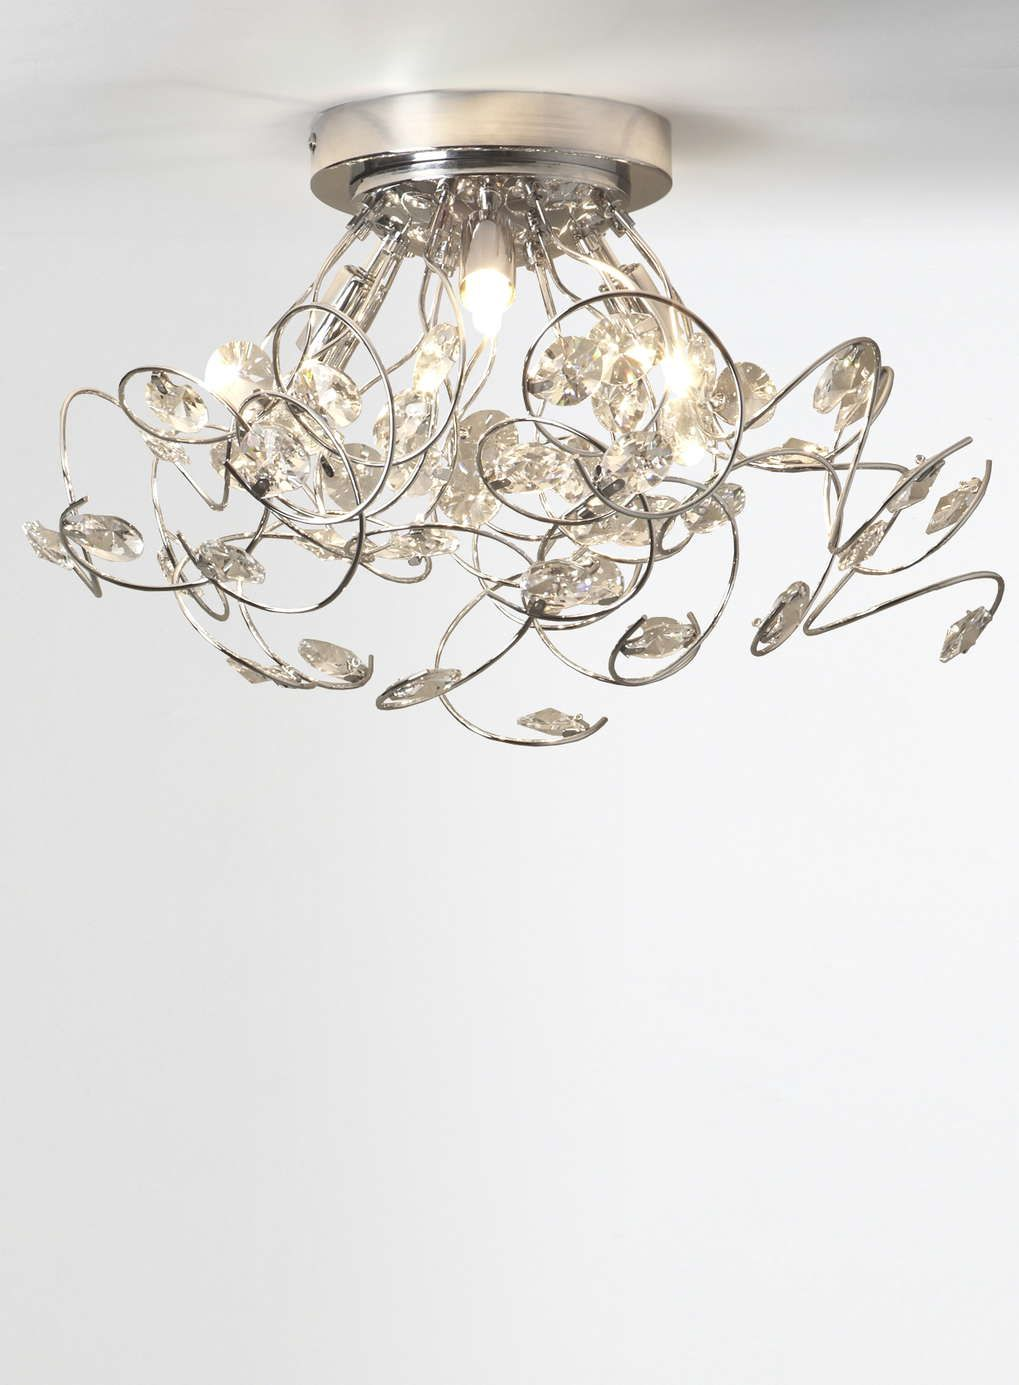 A stunning dynamic ceiling fitting with twirling arms decorated a stunning dynamic ceiling fitting with twirling arms decorated with twinkling crystals description from aloadofball Image collections